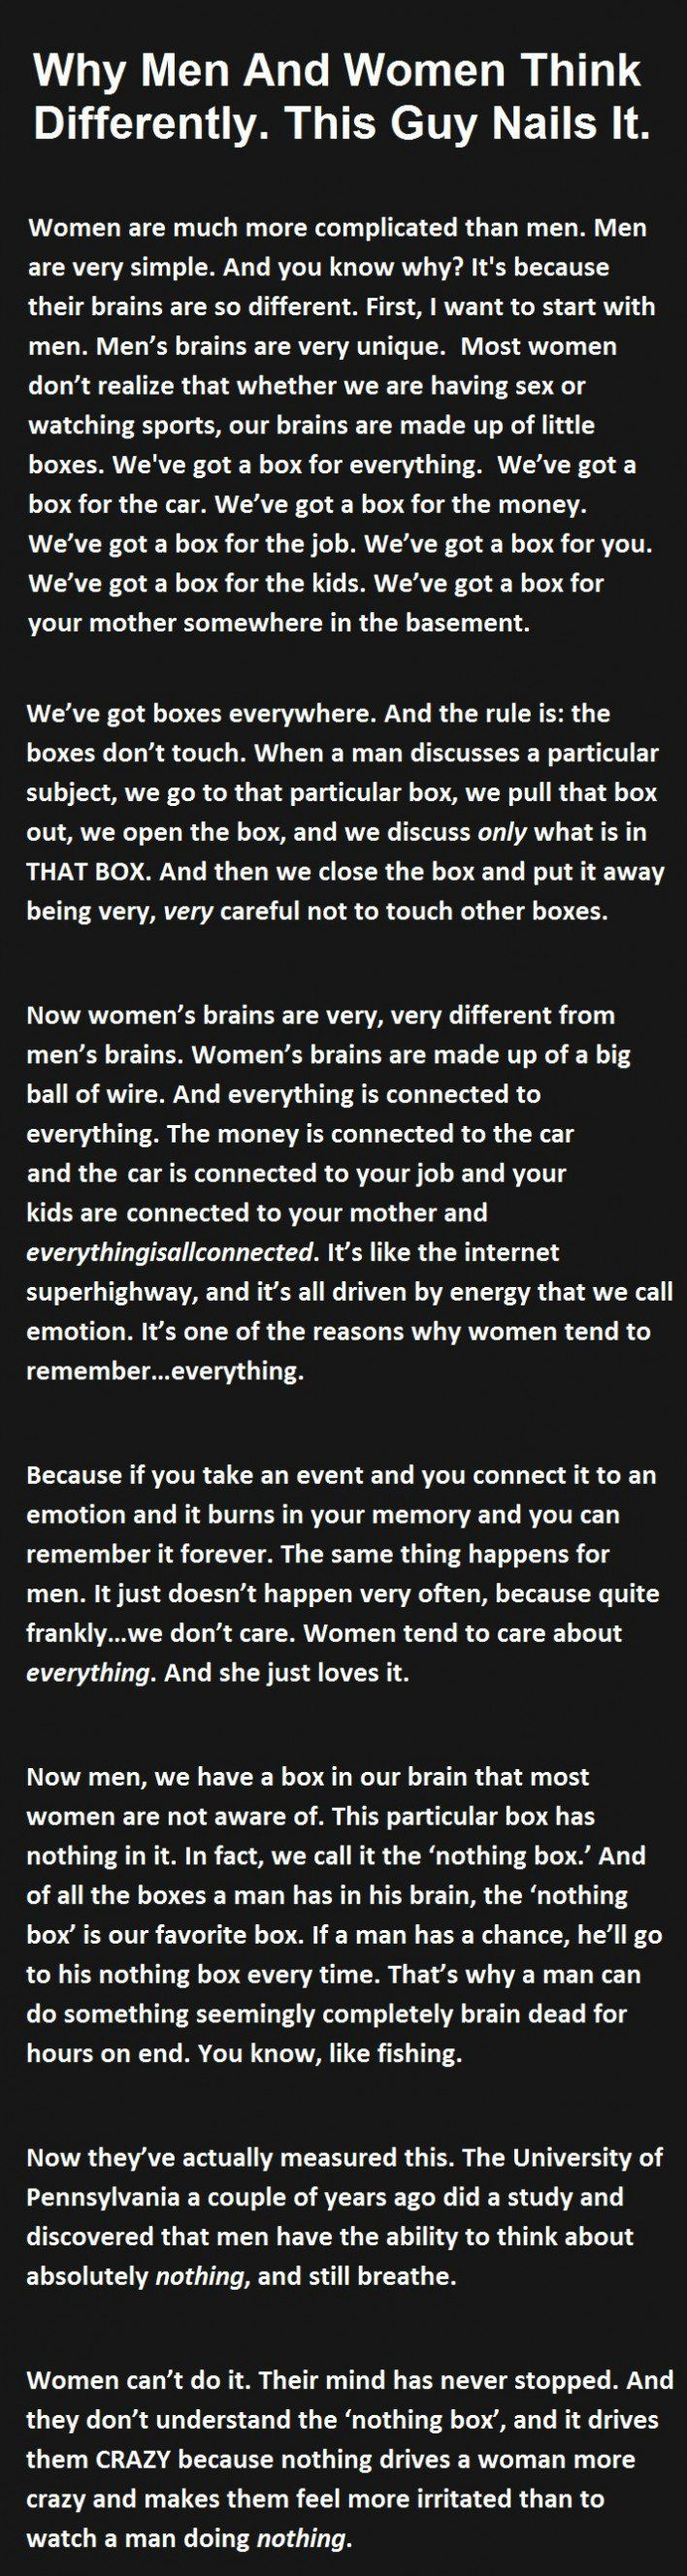 Quotes About Men And Women Why Men And Women Think Differentlythis Guy Nails It Woman